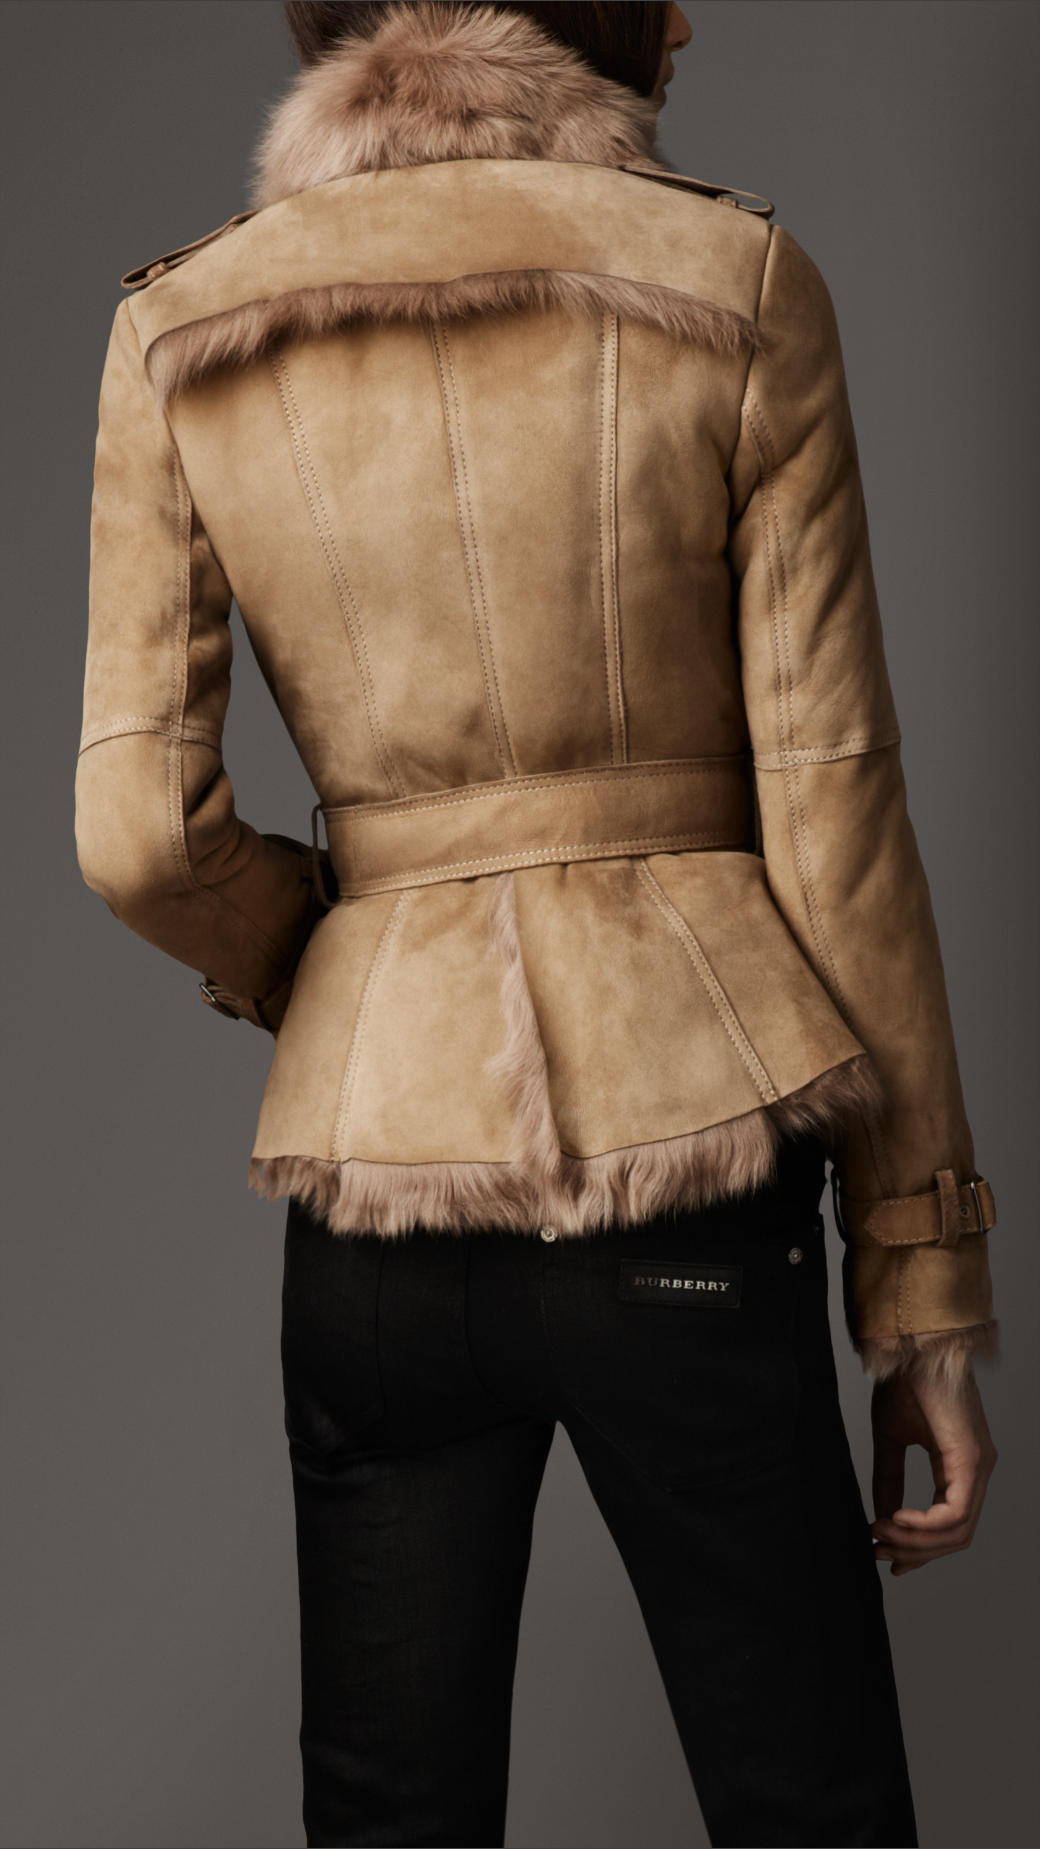 a777e765c1fd5e Lyst - Burberry Belted Shearling Jacket in Natural